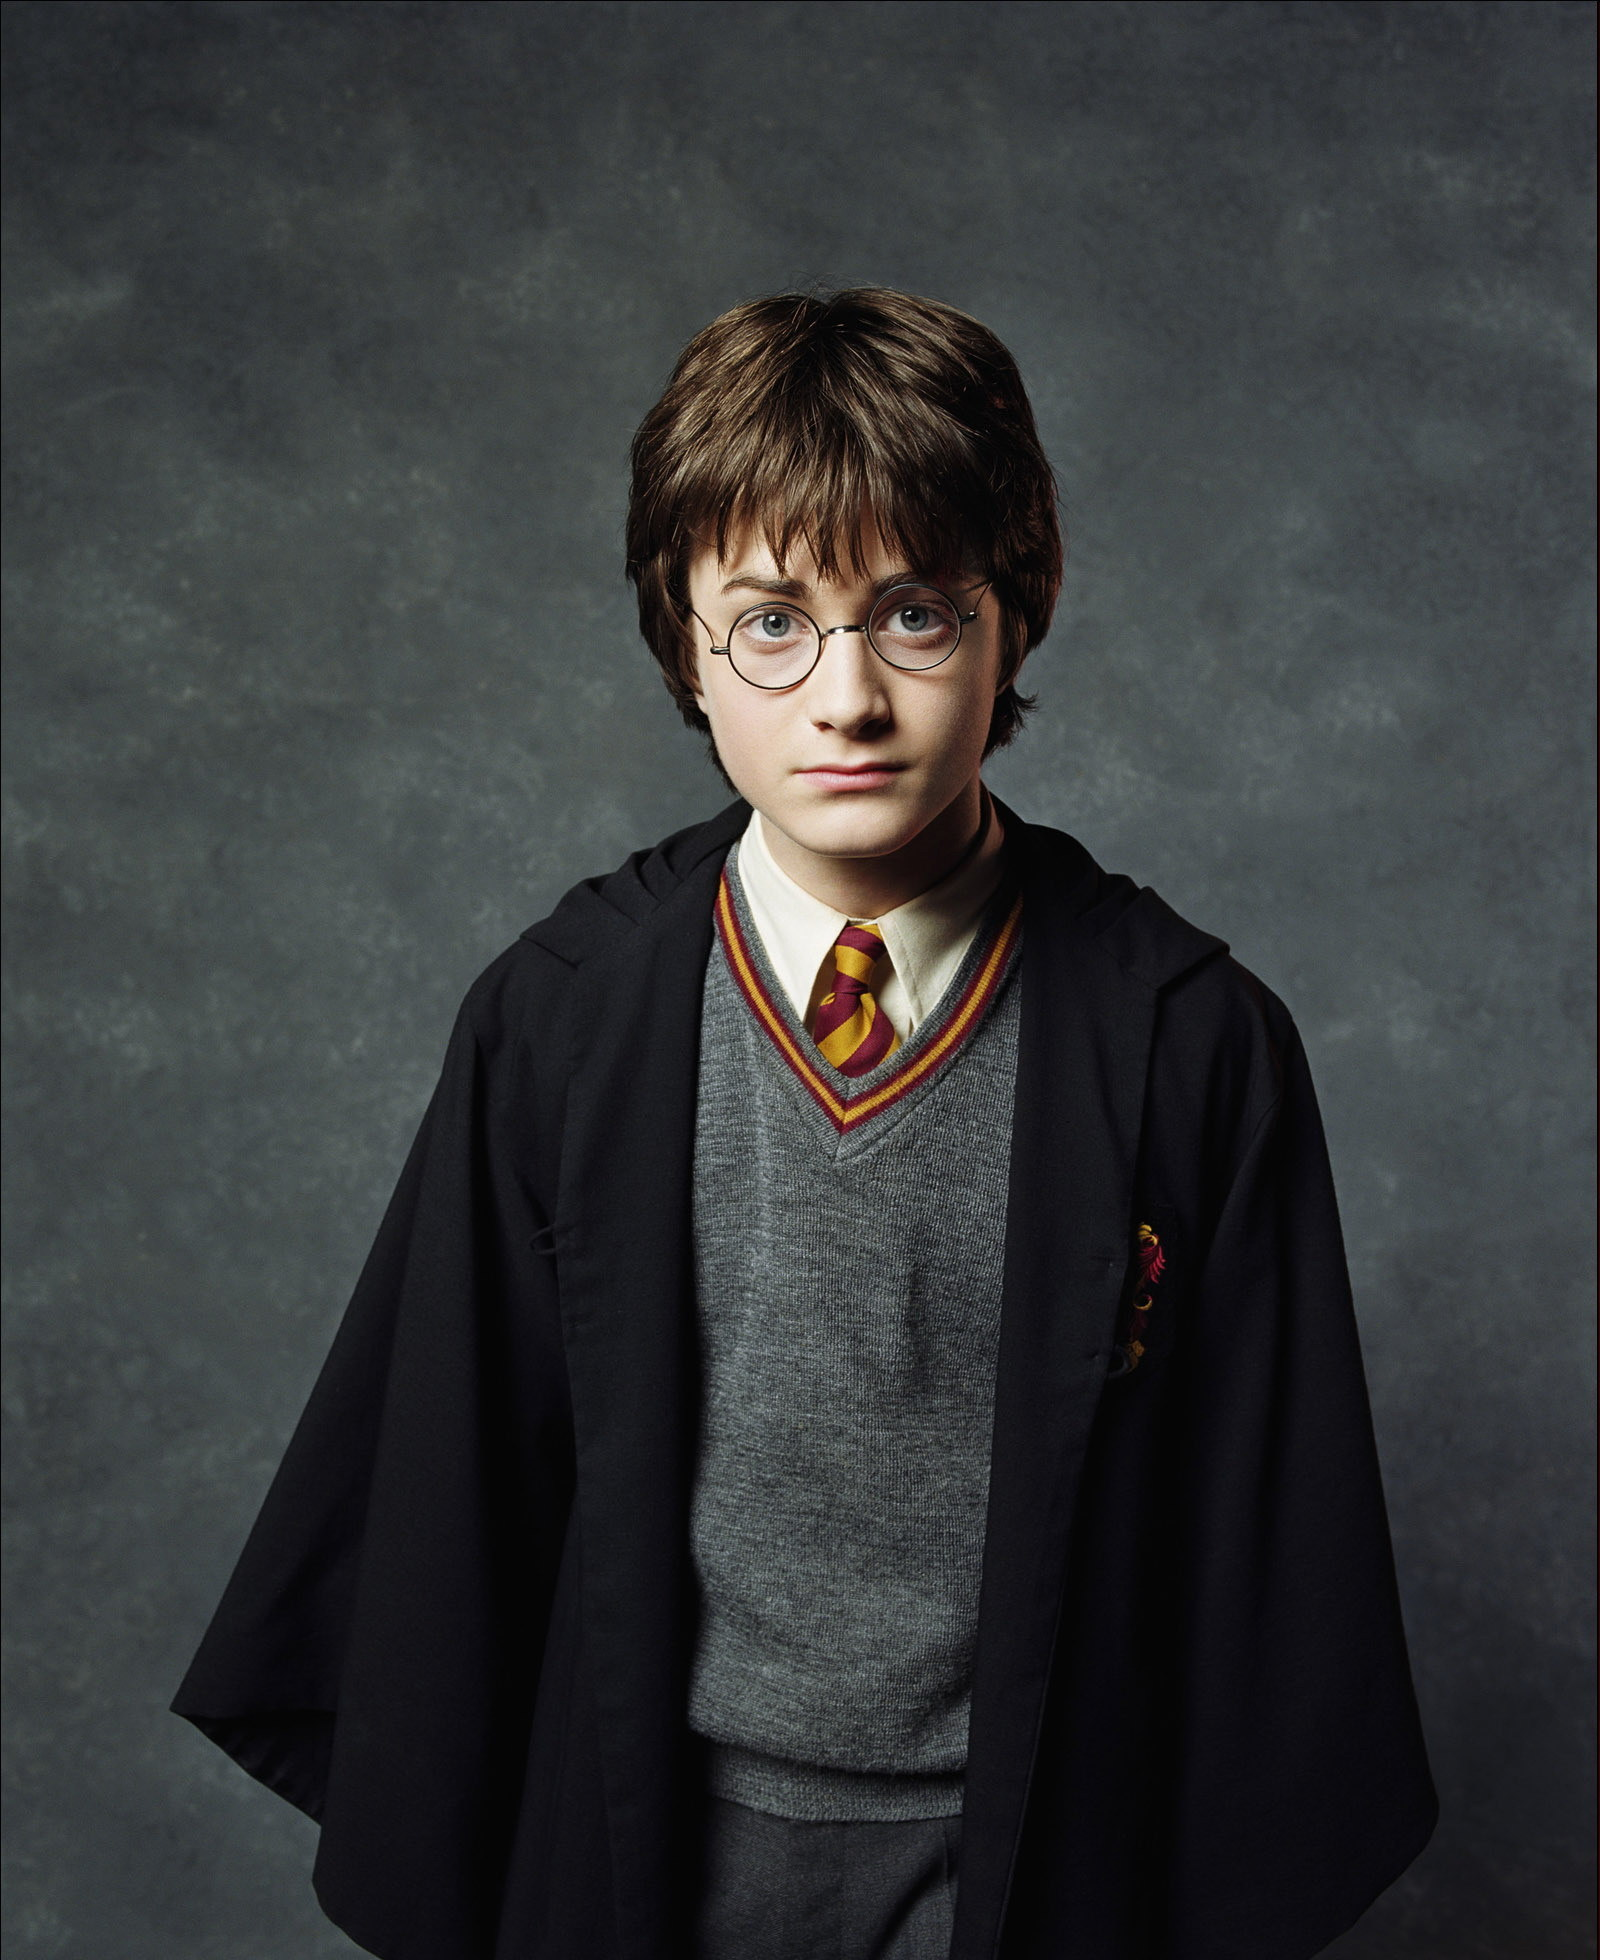 Harry james potter 2001 harry potter and the sorcerer s stone